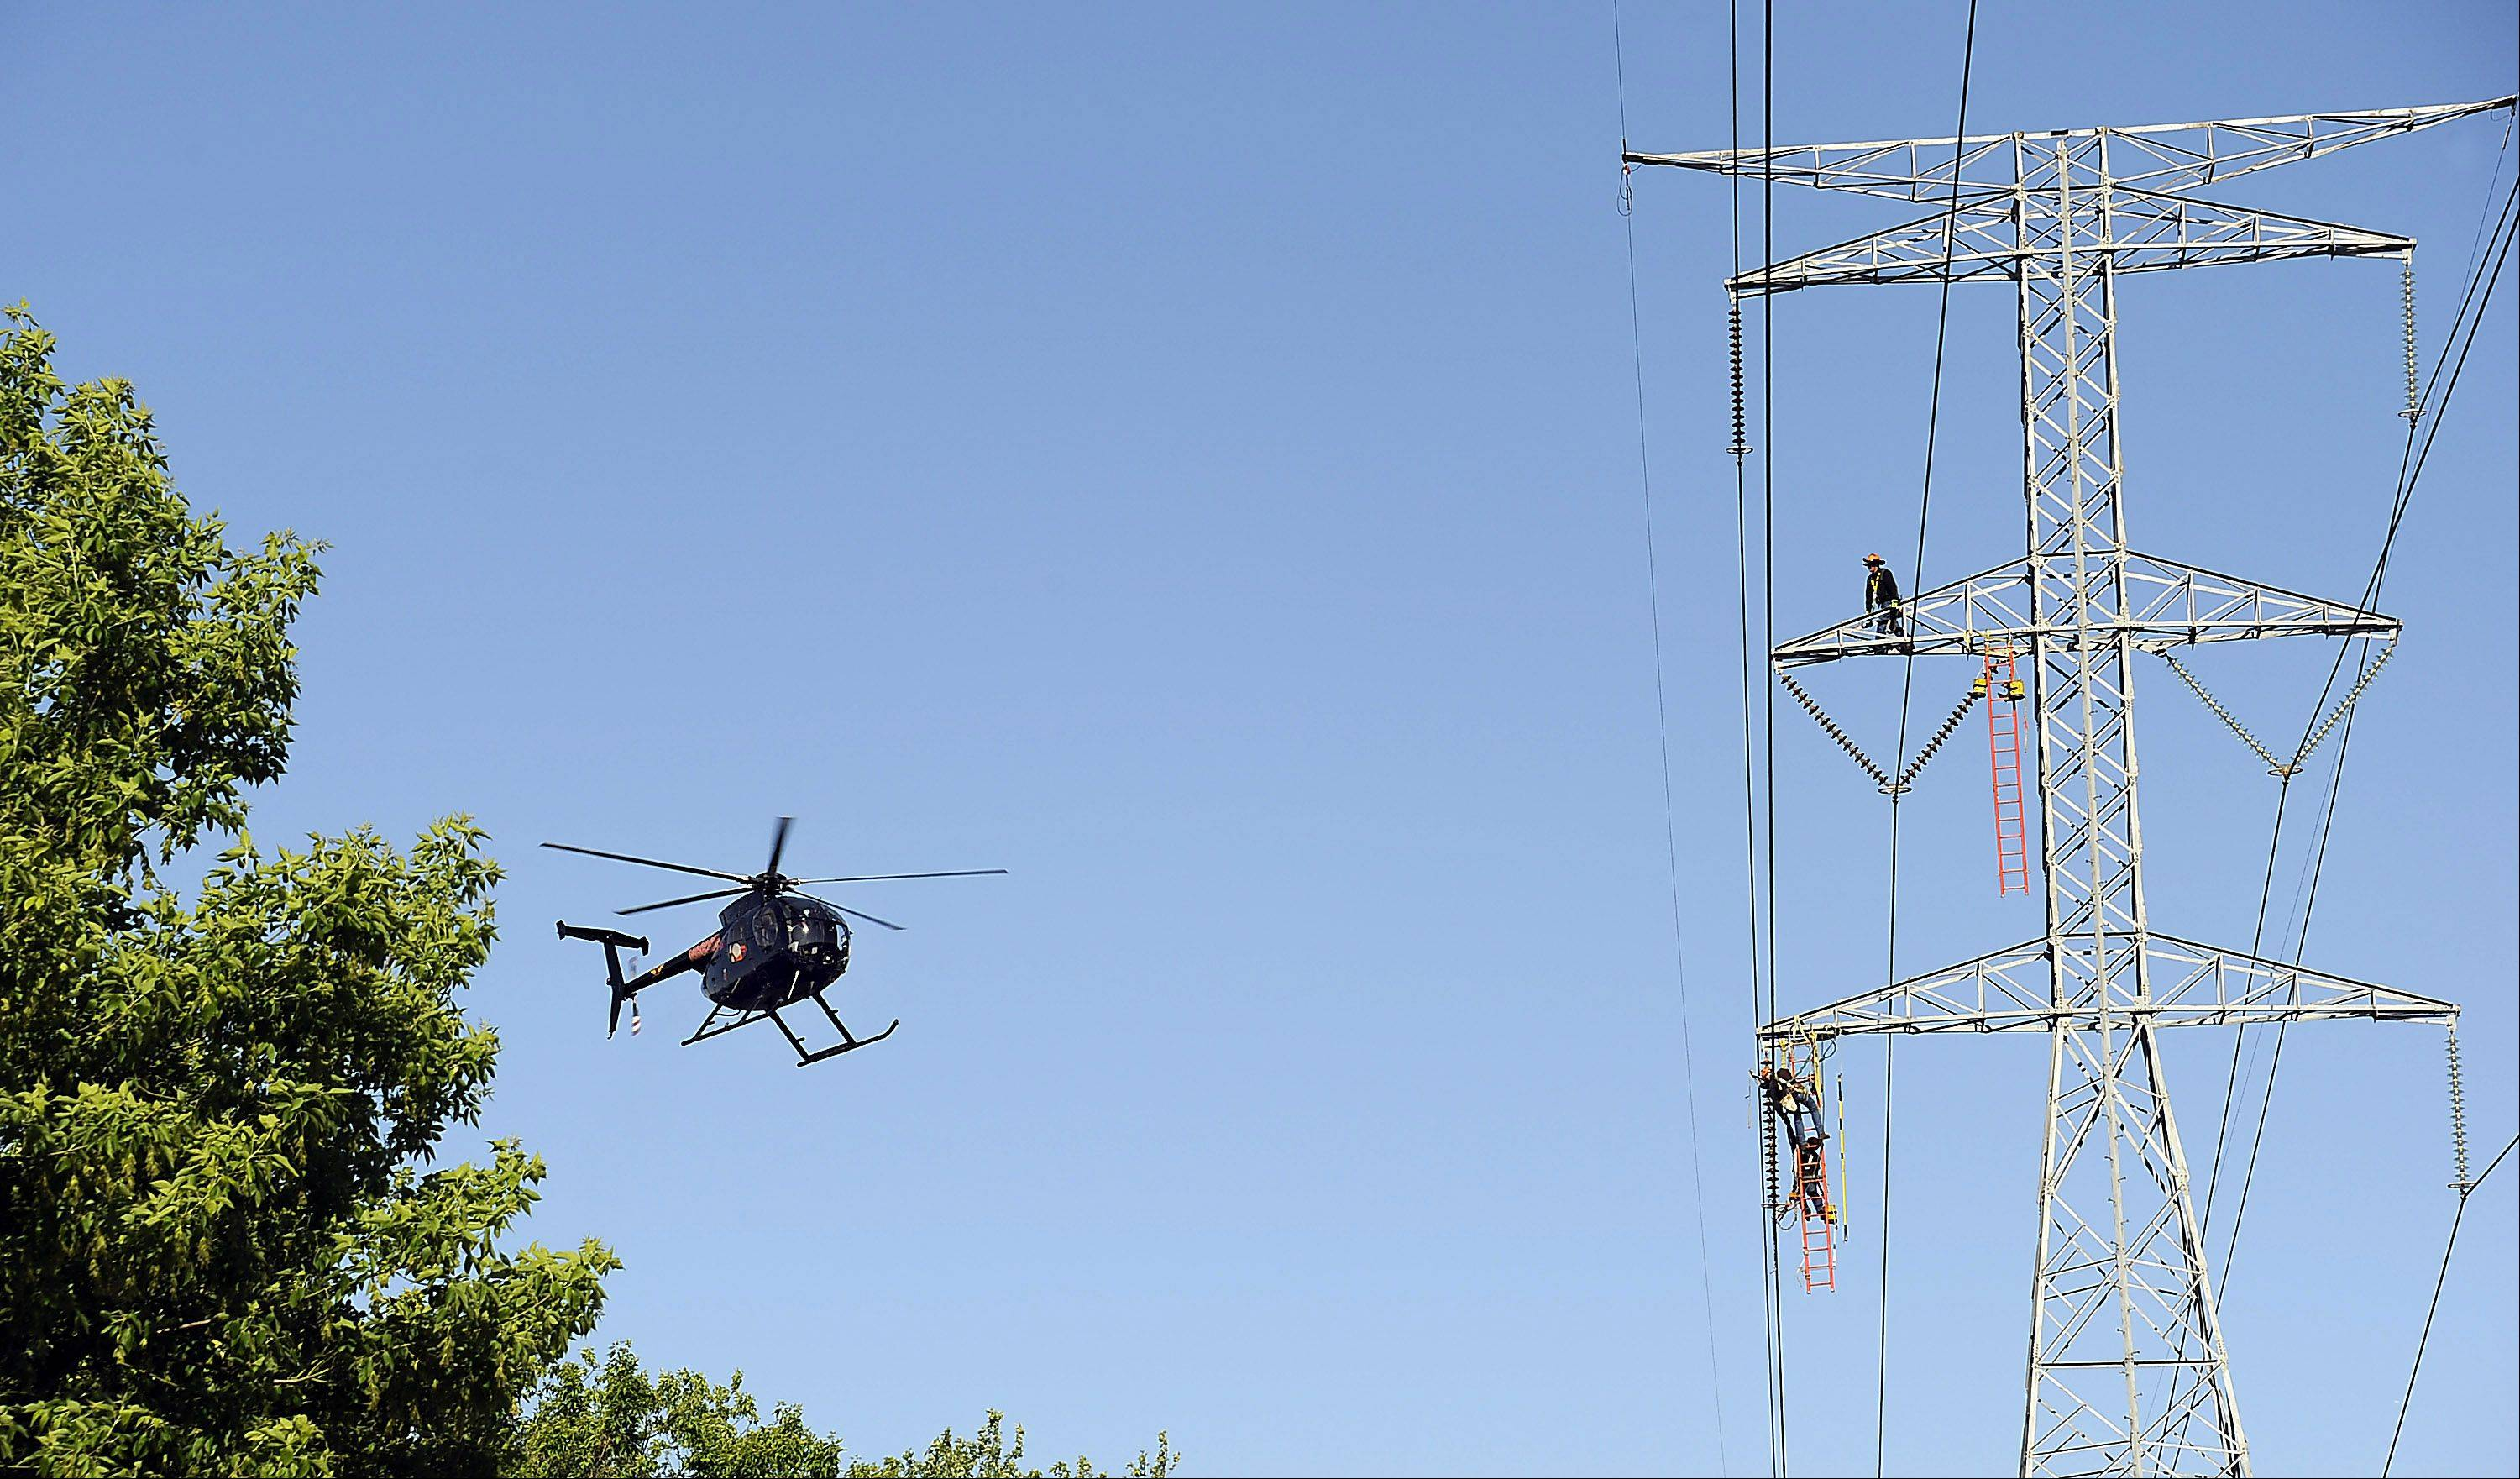 The three man team of ComEd overhead electricians on the 130ft. electrical tower position their equipment while pilot Brian Anderson hovers waiting for a hand signal to bring in the new glass insulators string to replace the porcelain ones which were made in 1964.